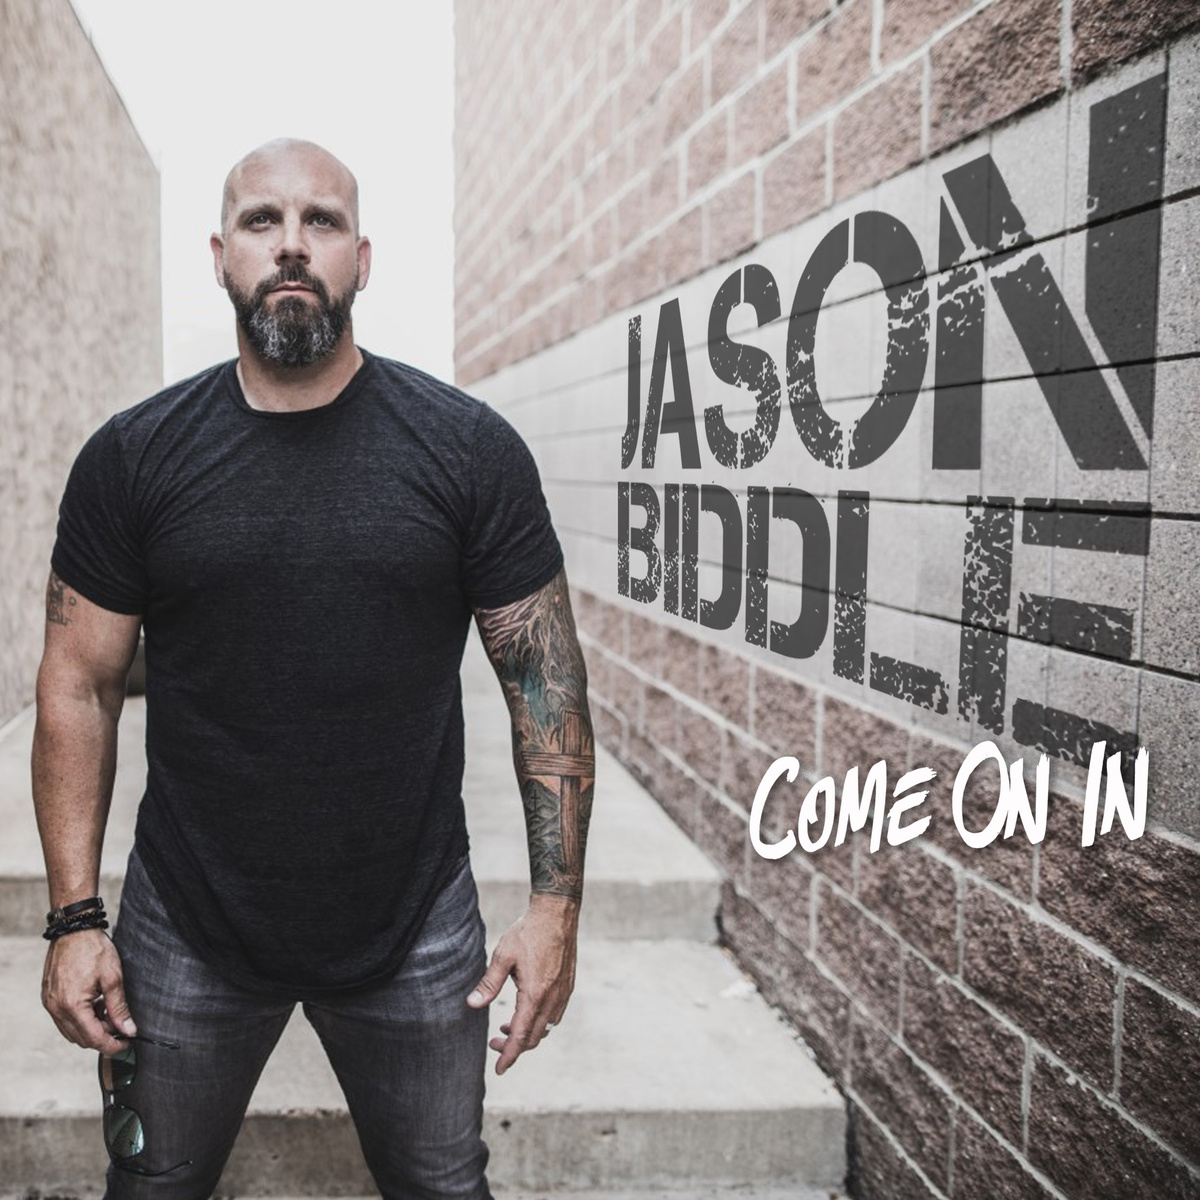 Jason Biddle - Come On In